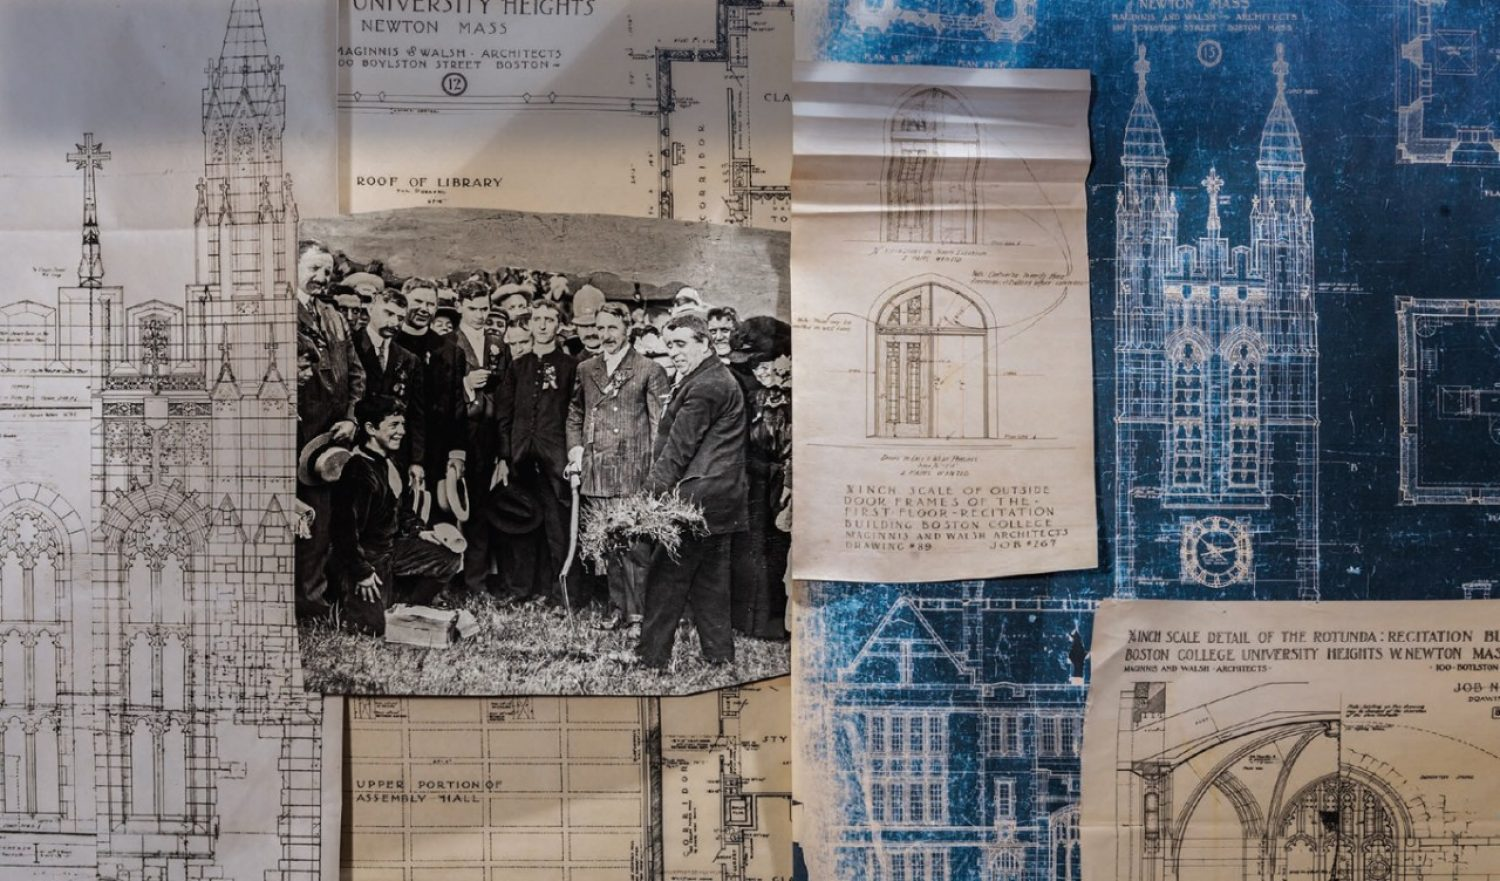 blueprints and historical images